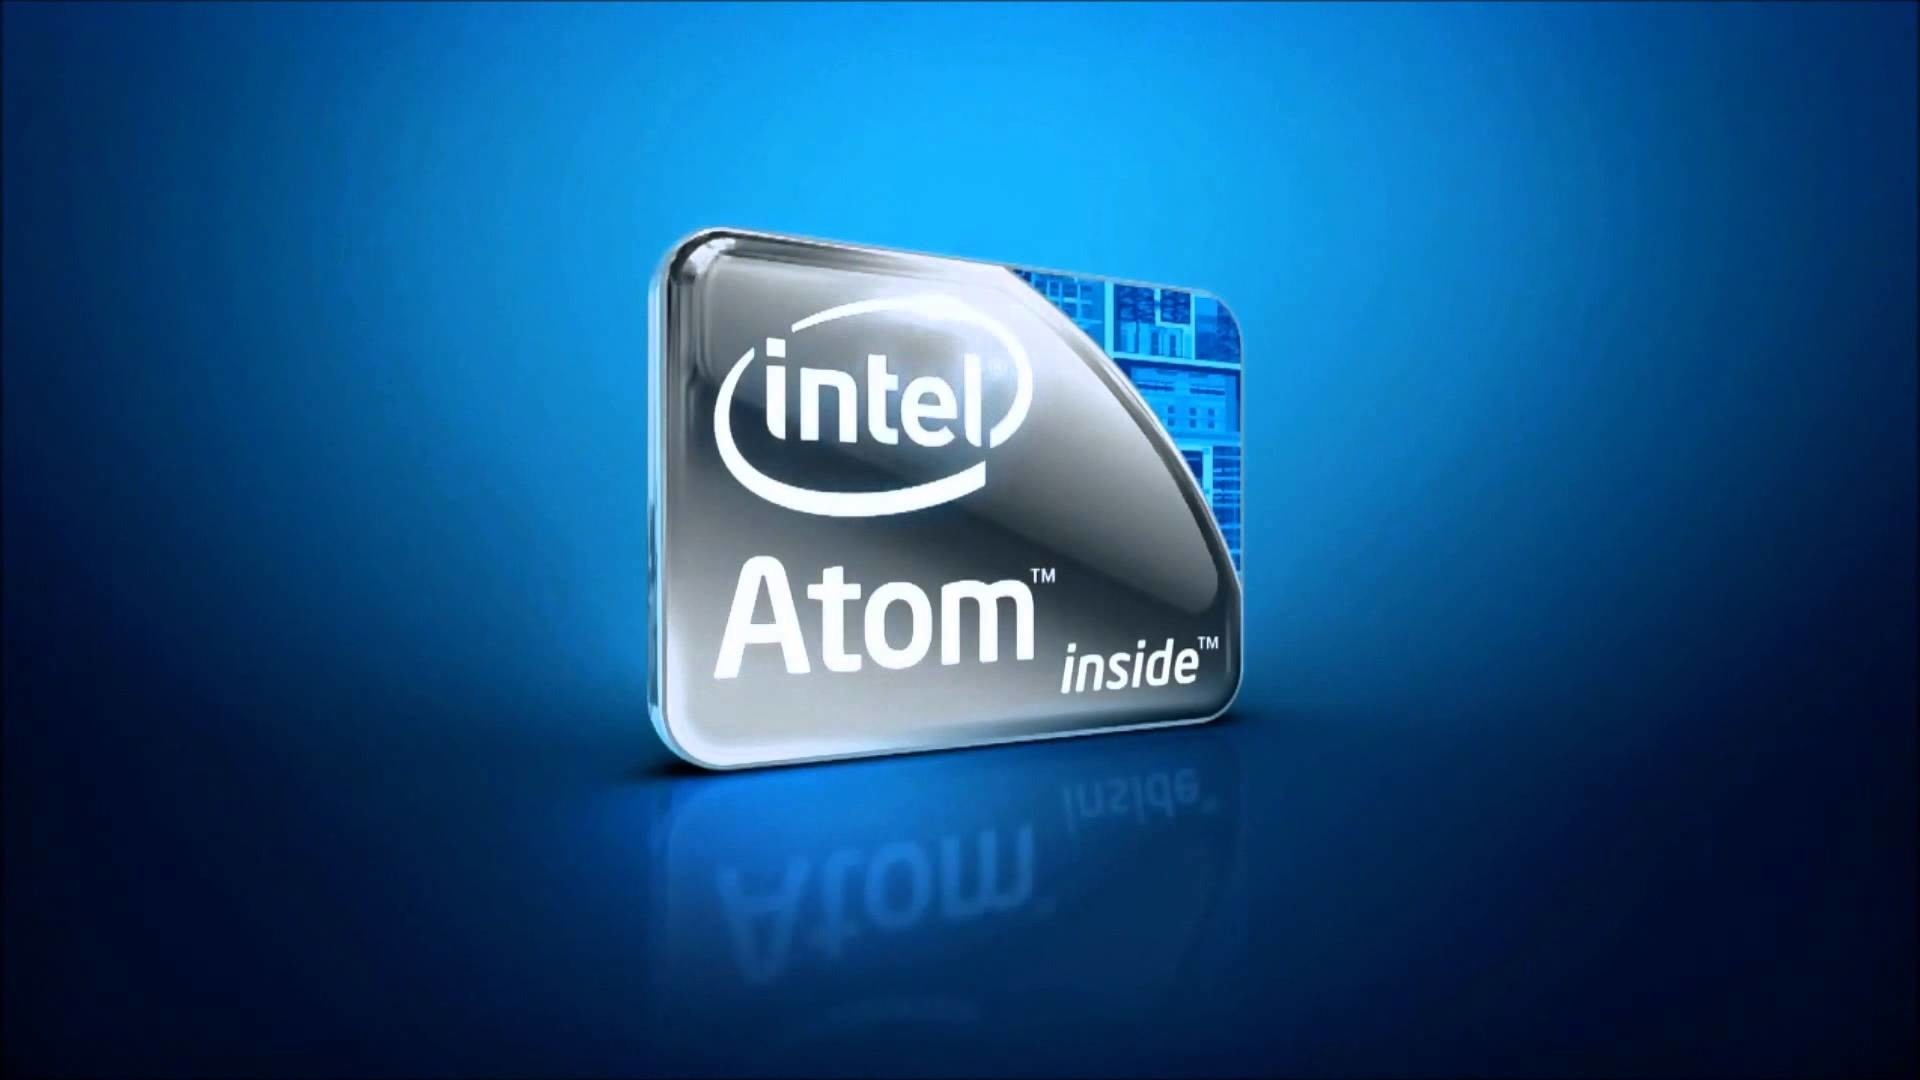 1920x1080 Intel Atom Images Crazy Gallery